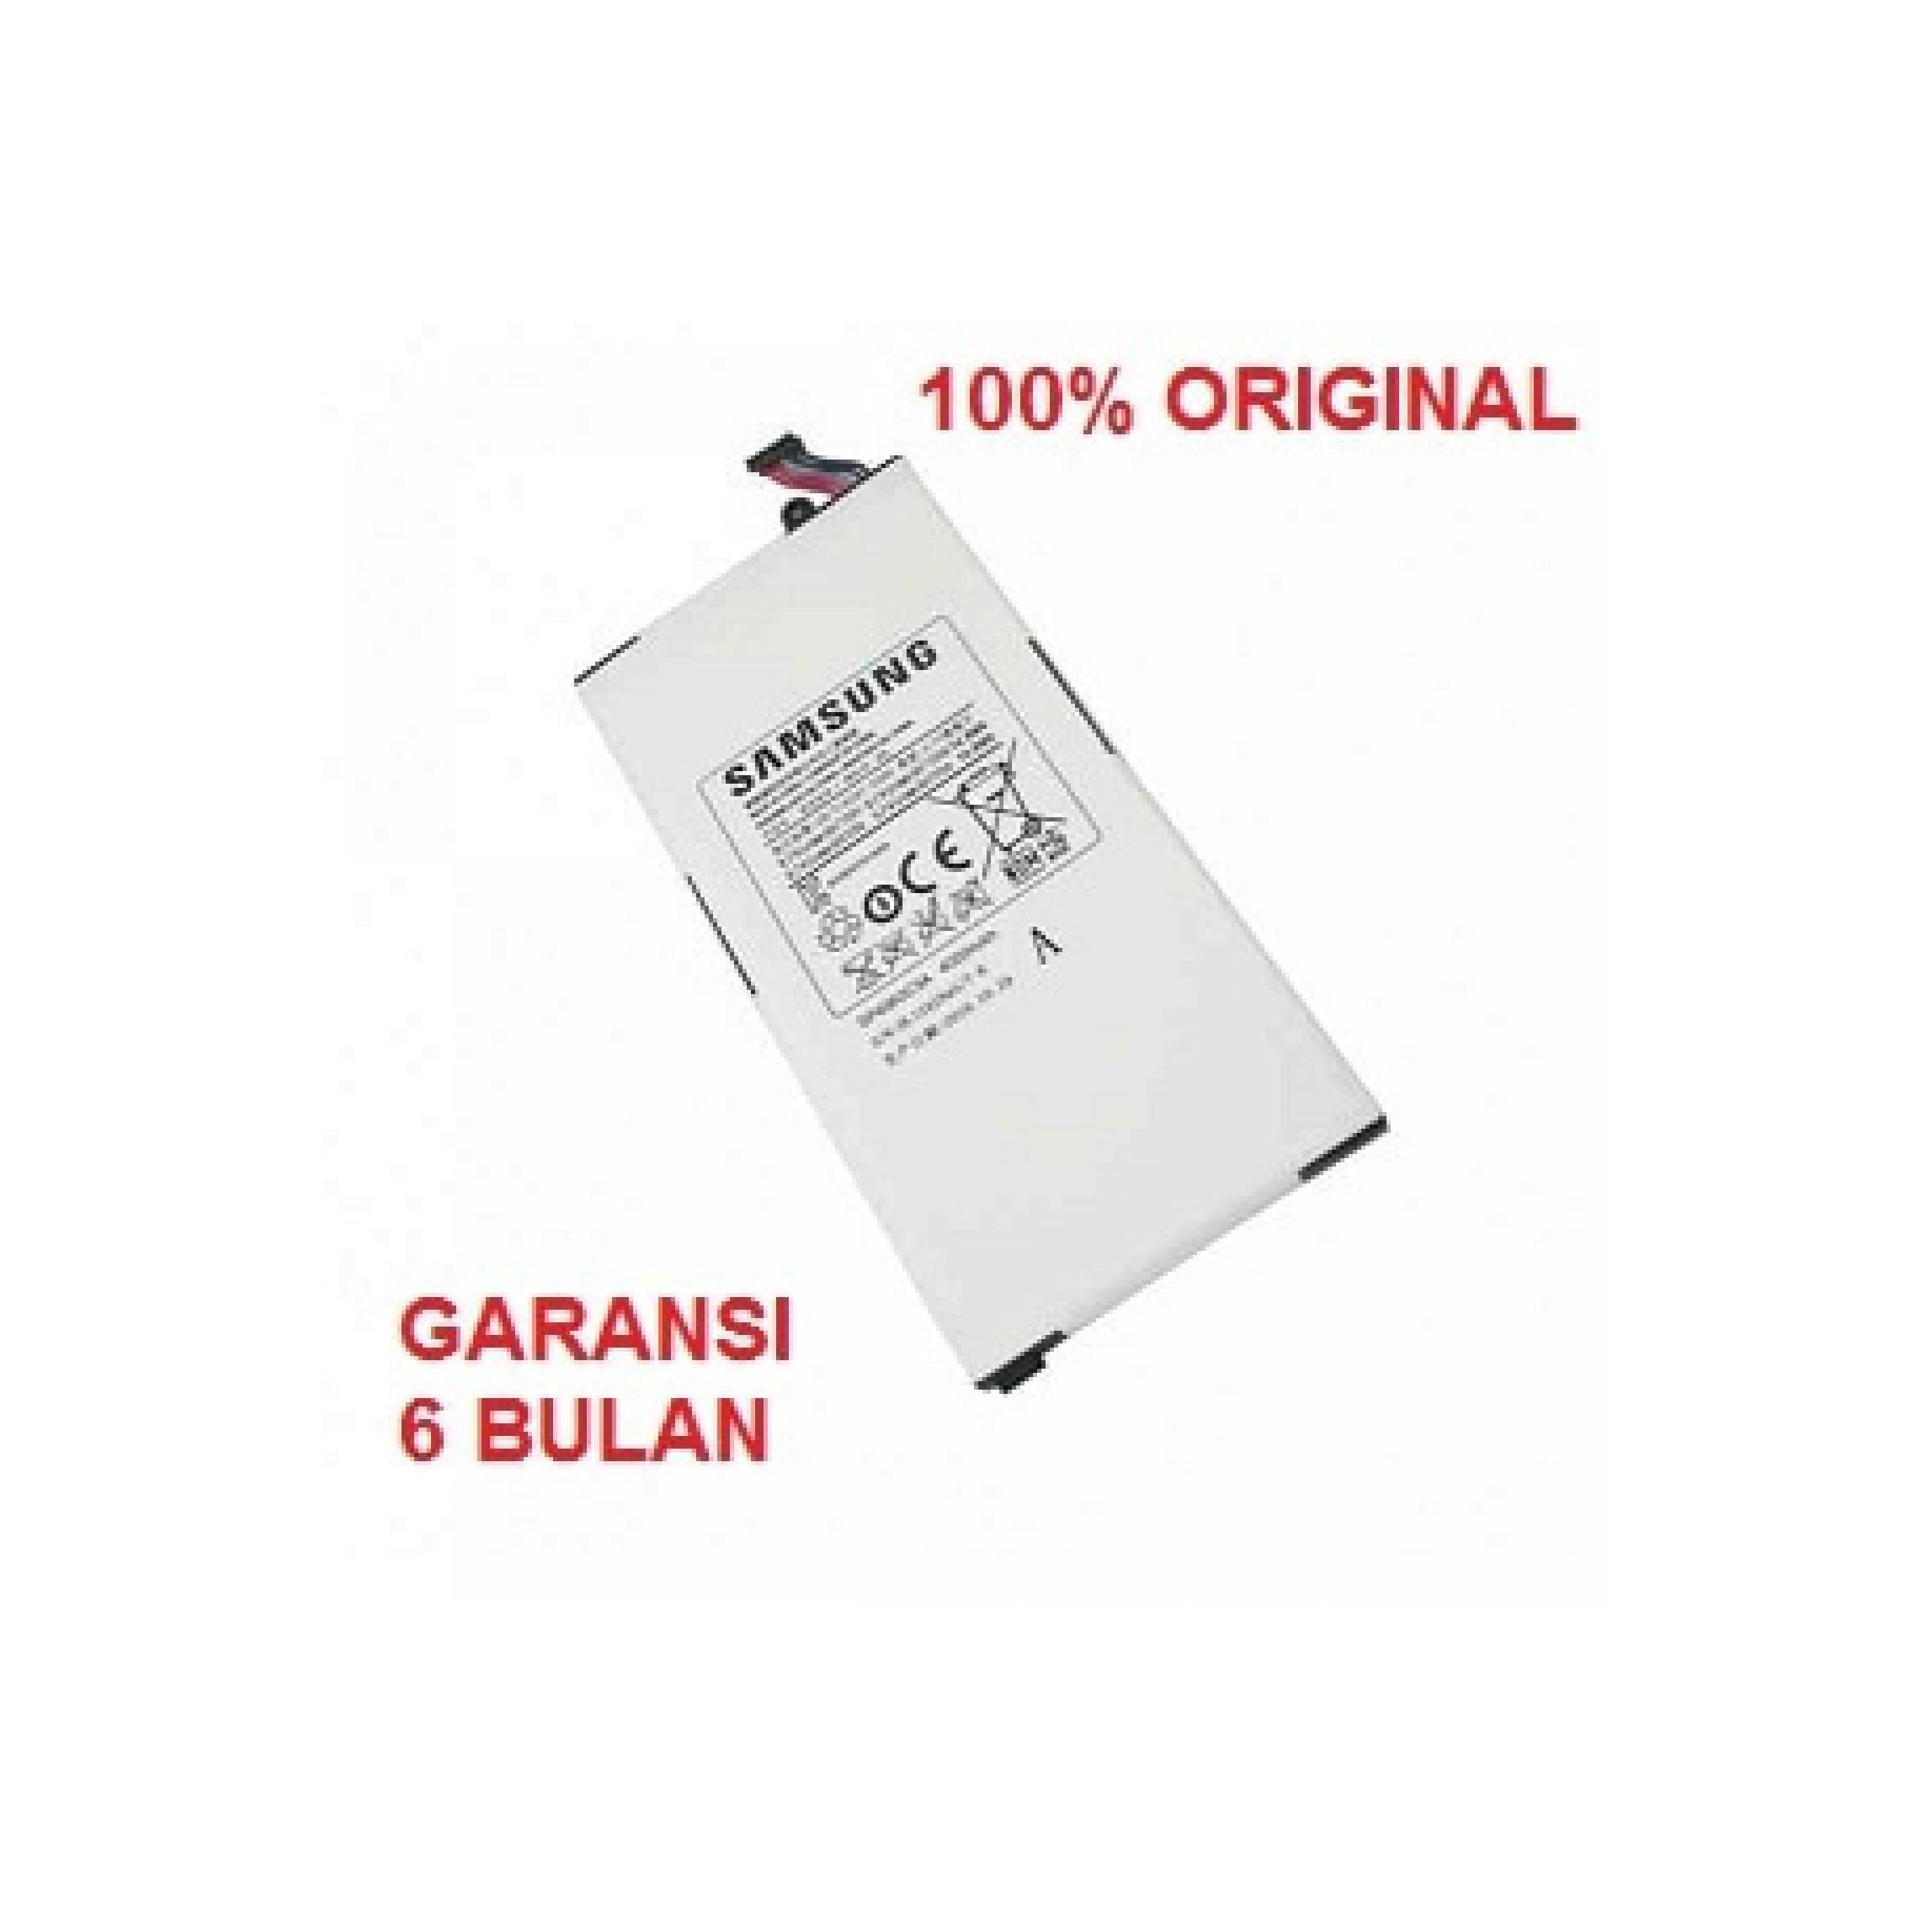 100% ORIGINAL SAMSUNG Battery SP4960C3A / P1000 Galaxy Tab 7, P1010.